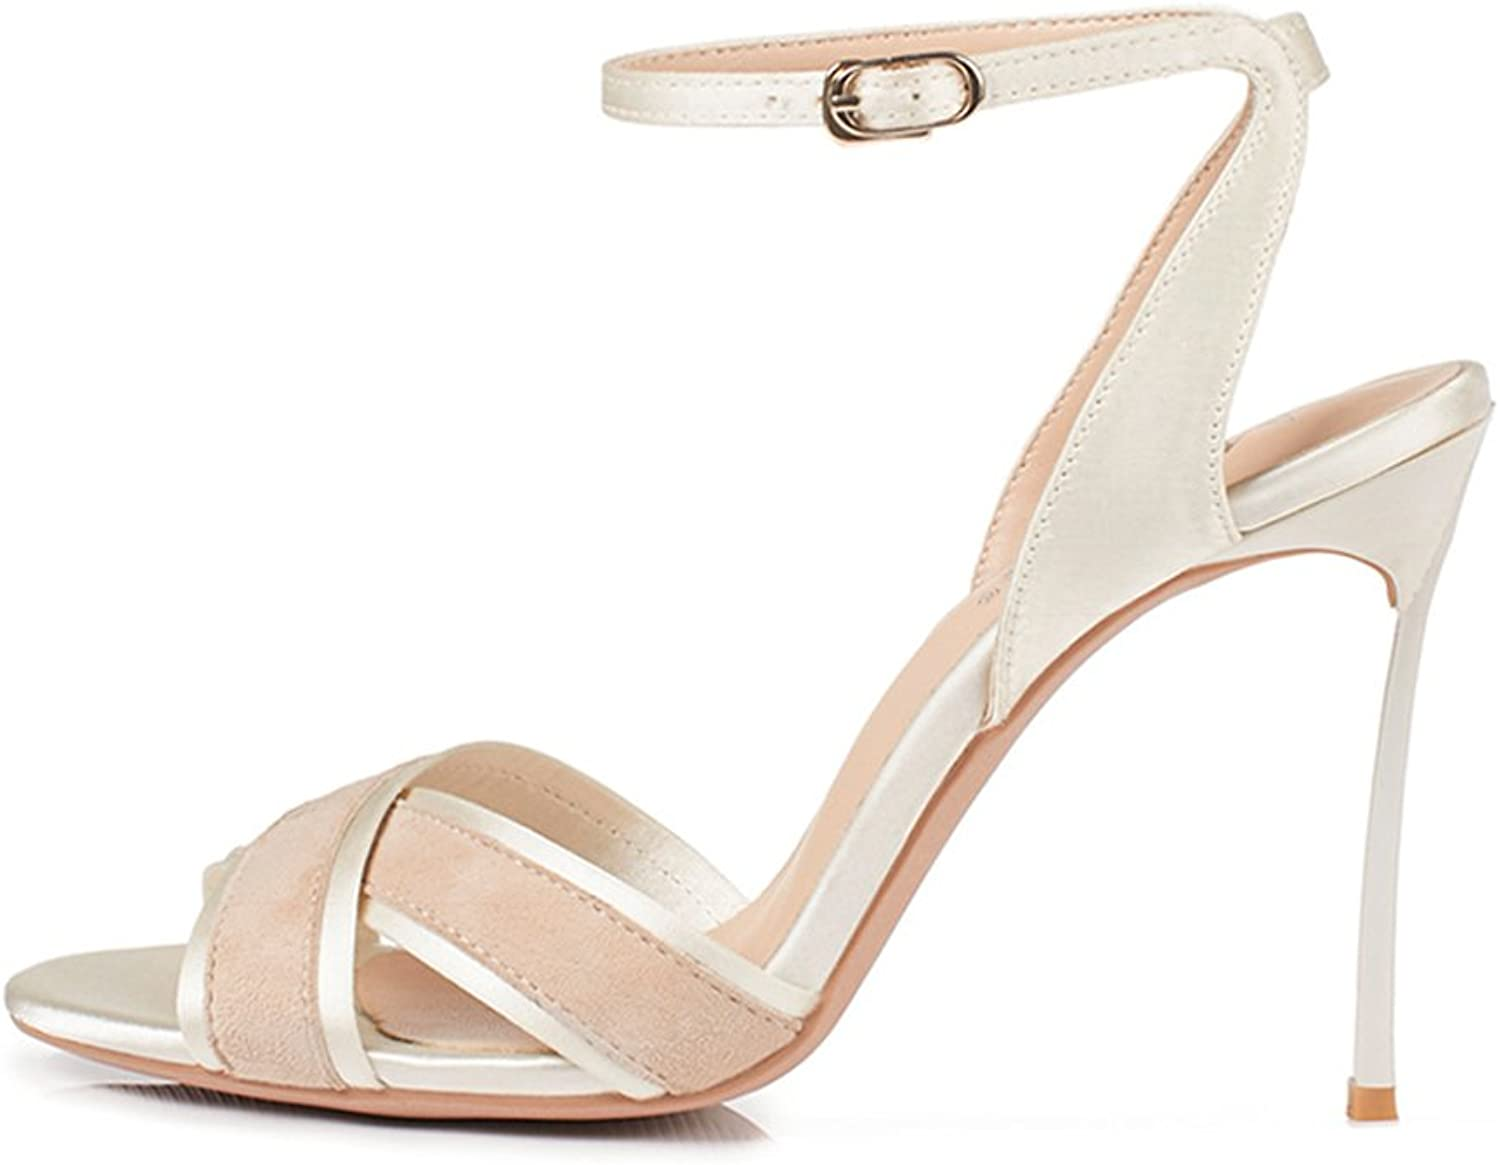 JE shoes Female Sandals High-Heeled shoes Cross with A Buckle with Wild 10cm